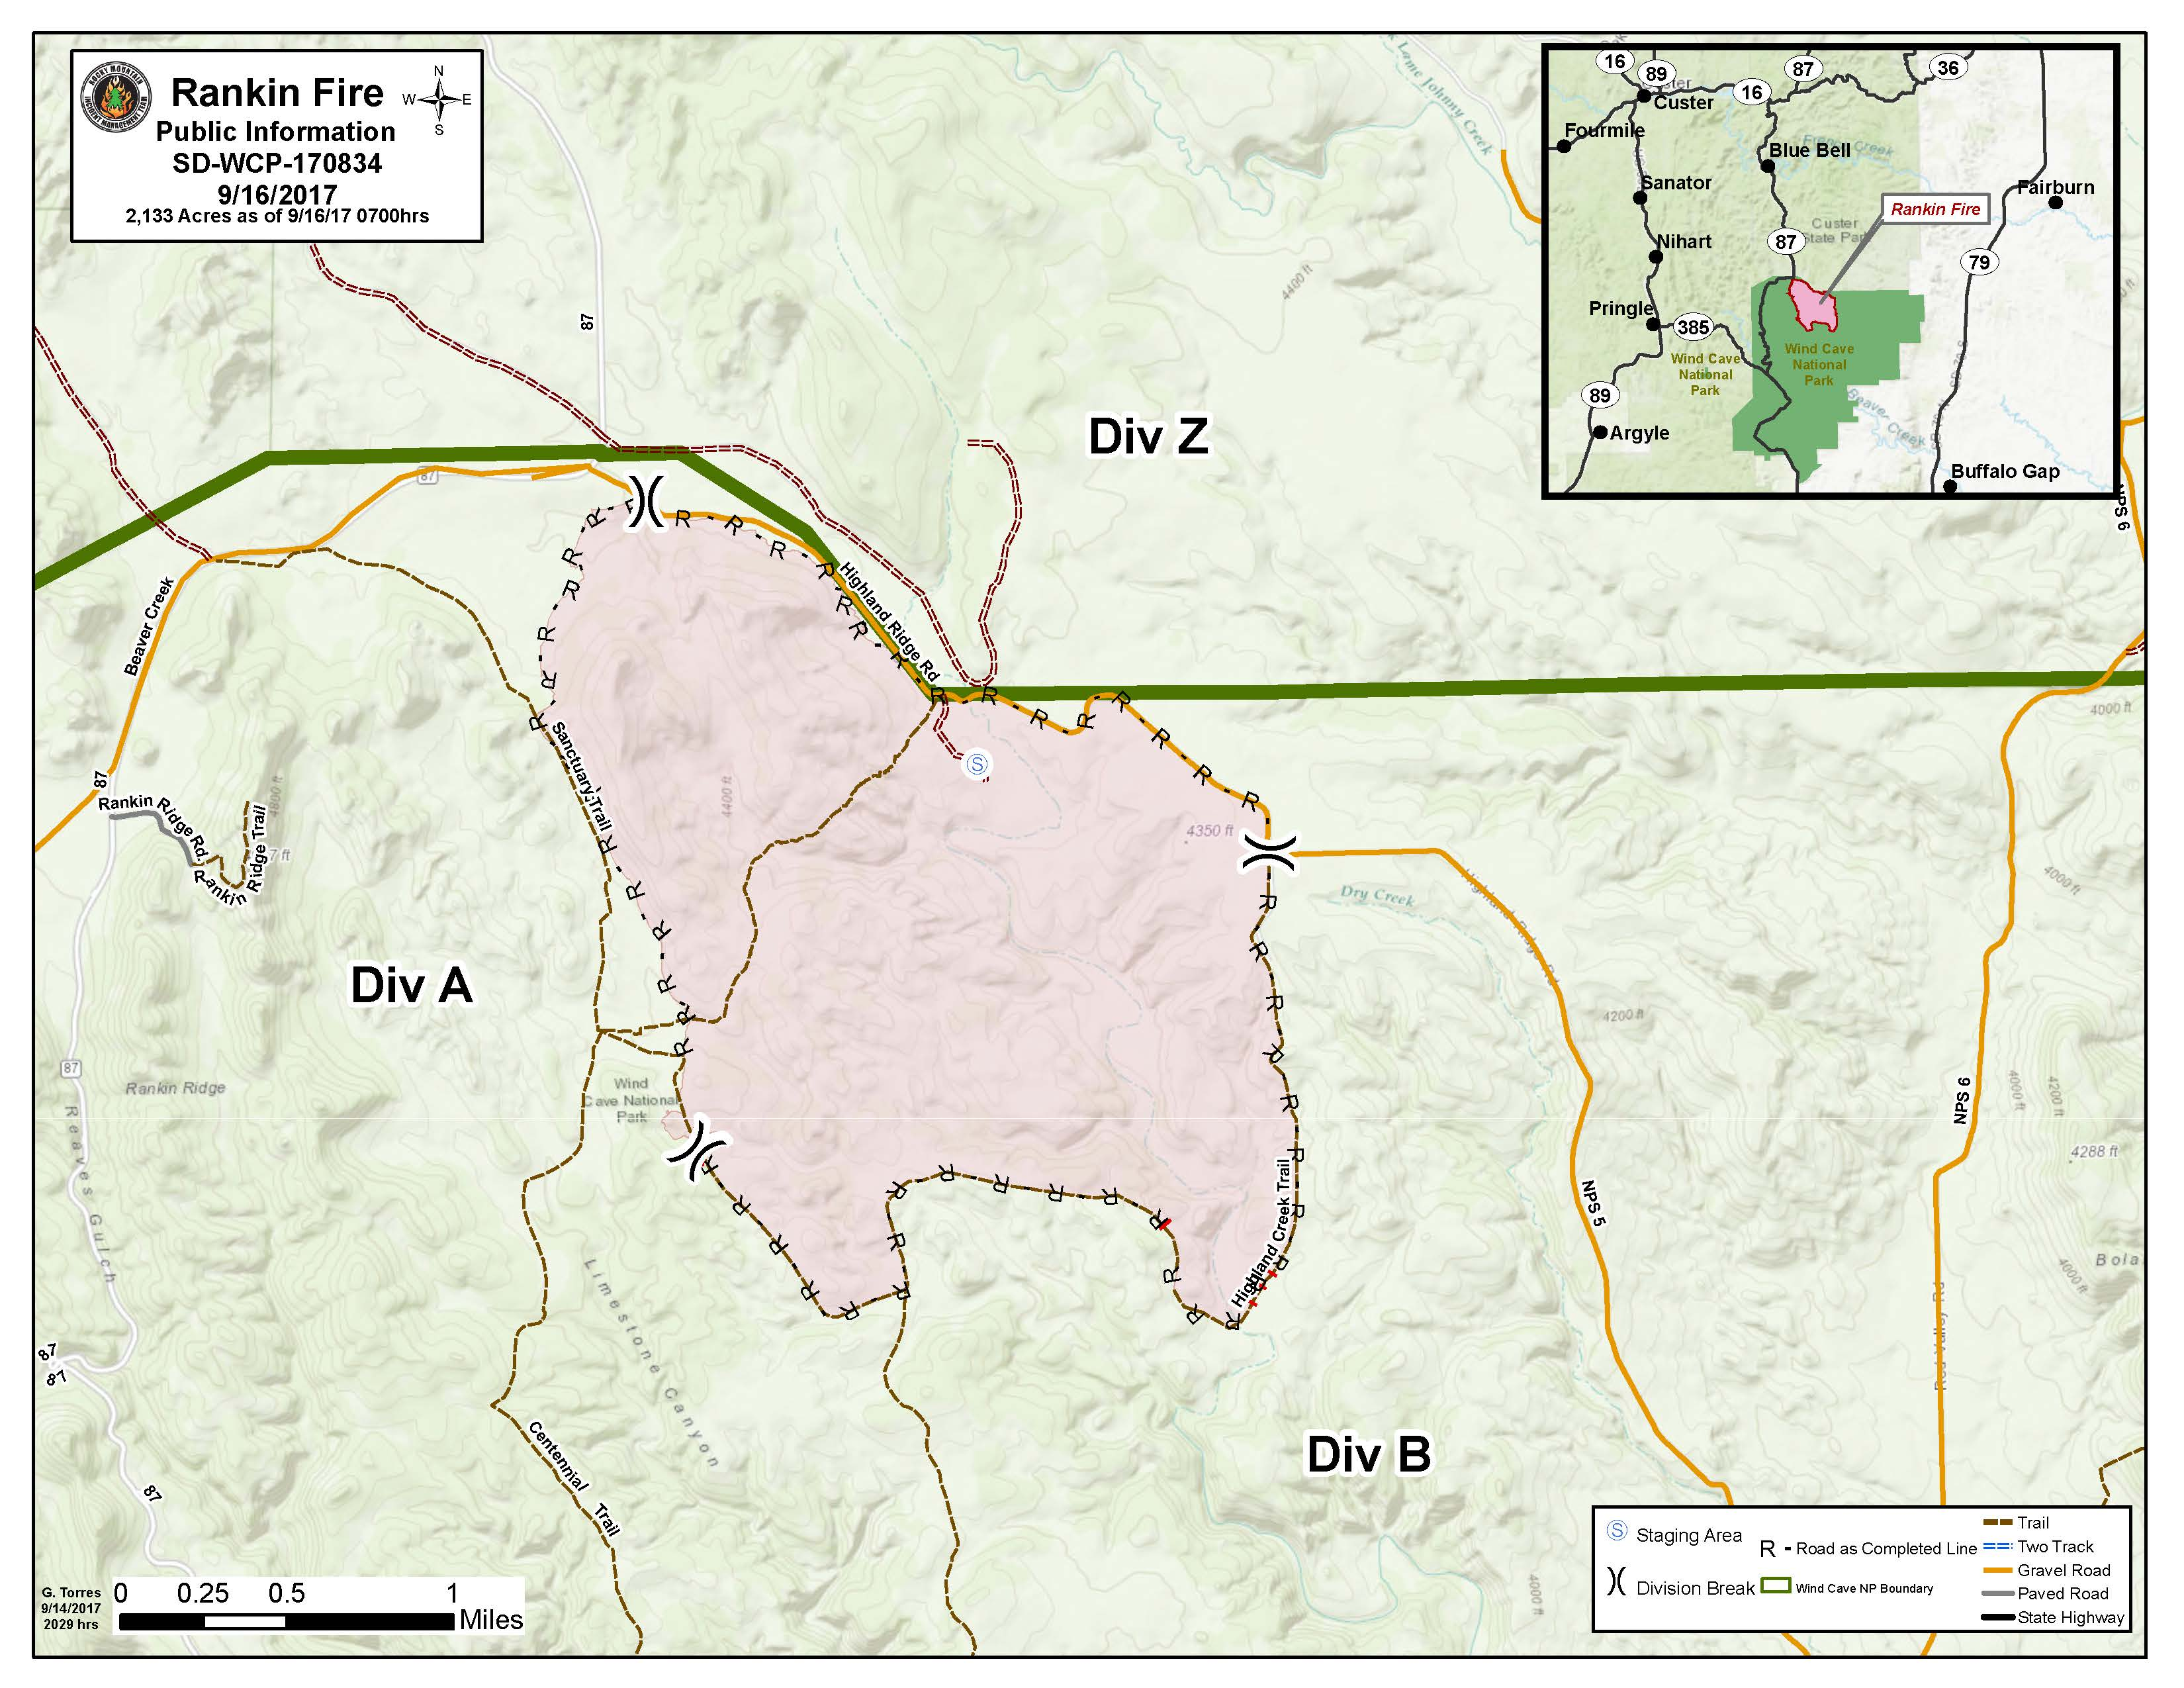 Map showing the extent of the Rankin Fire